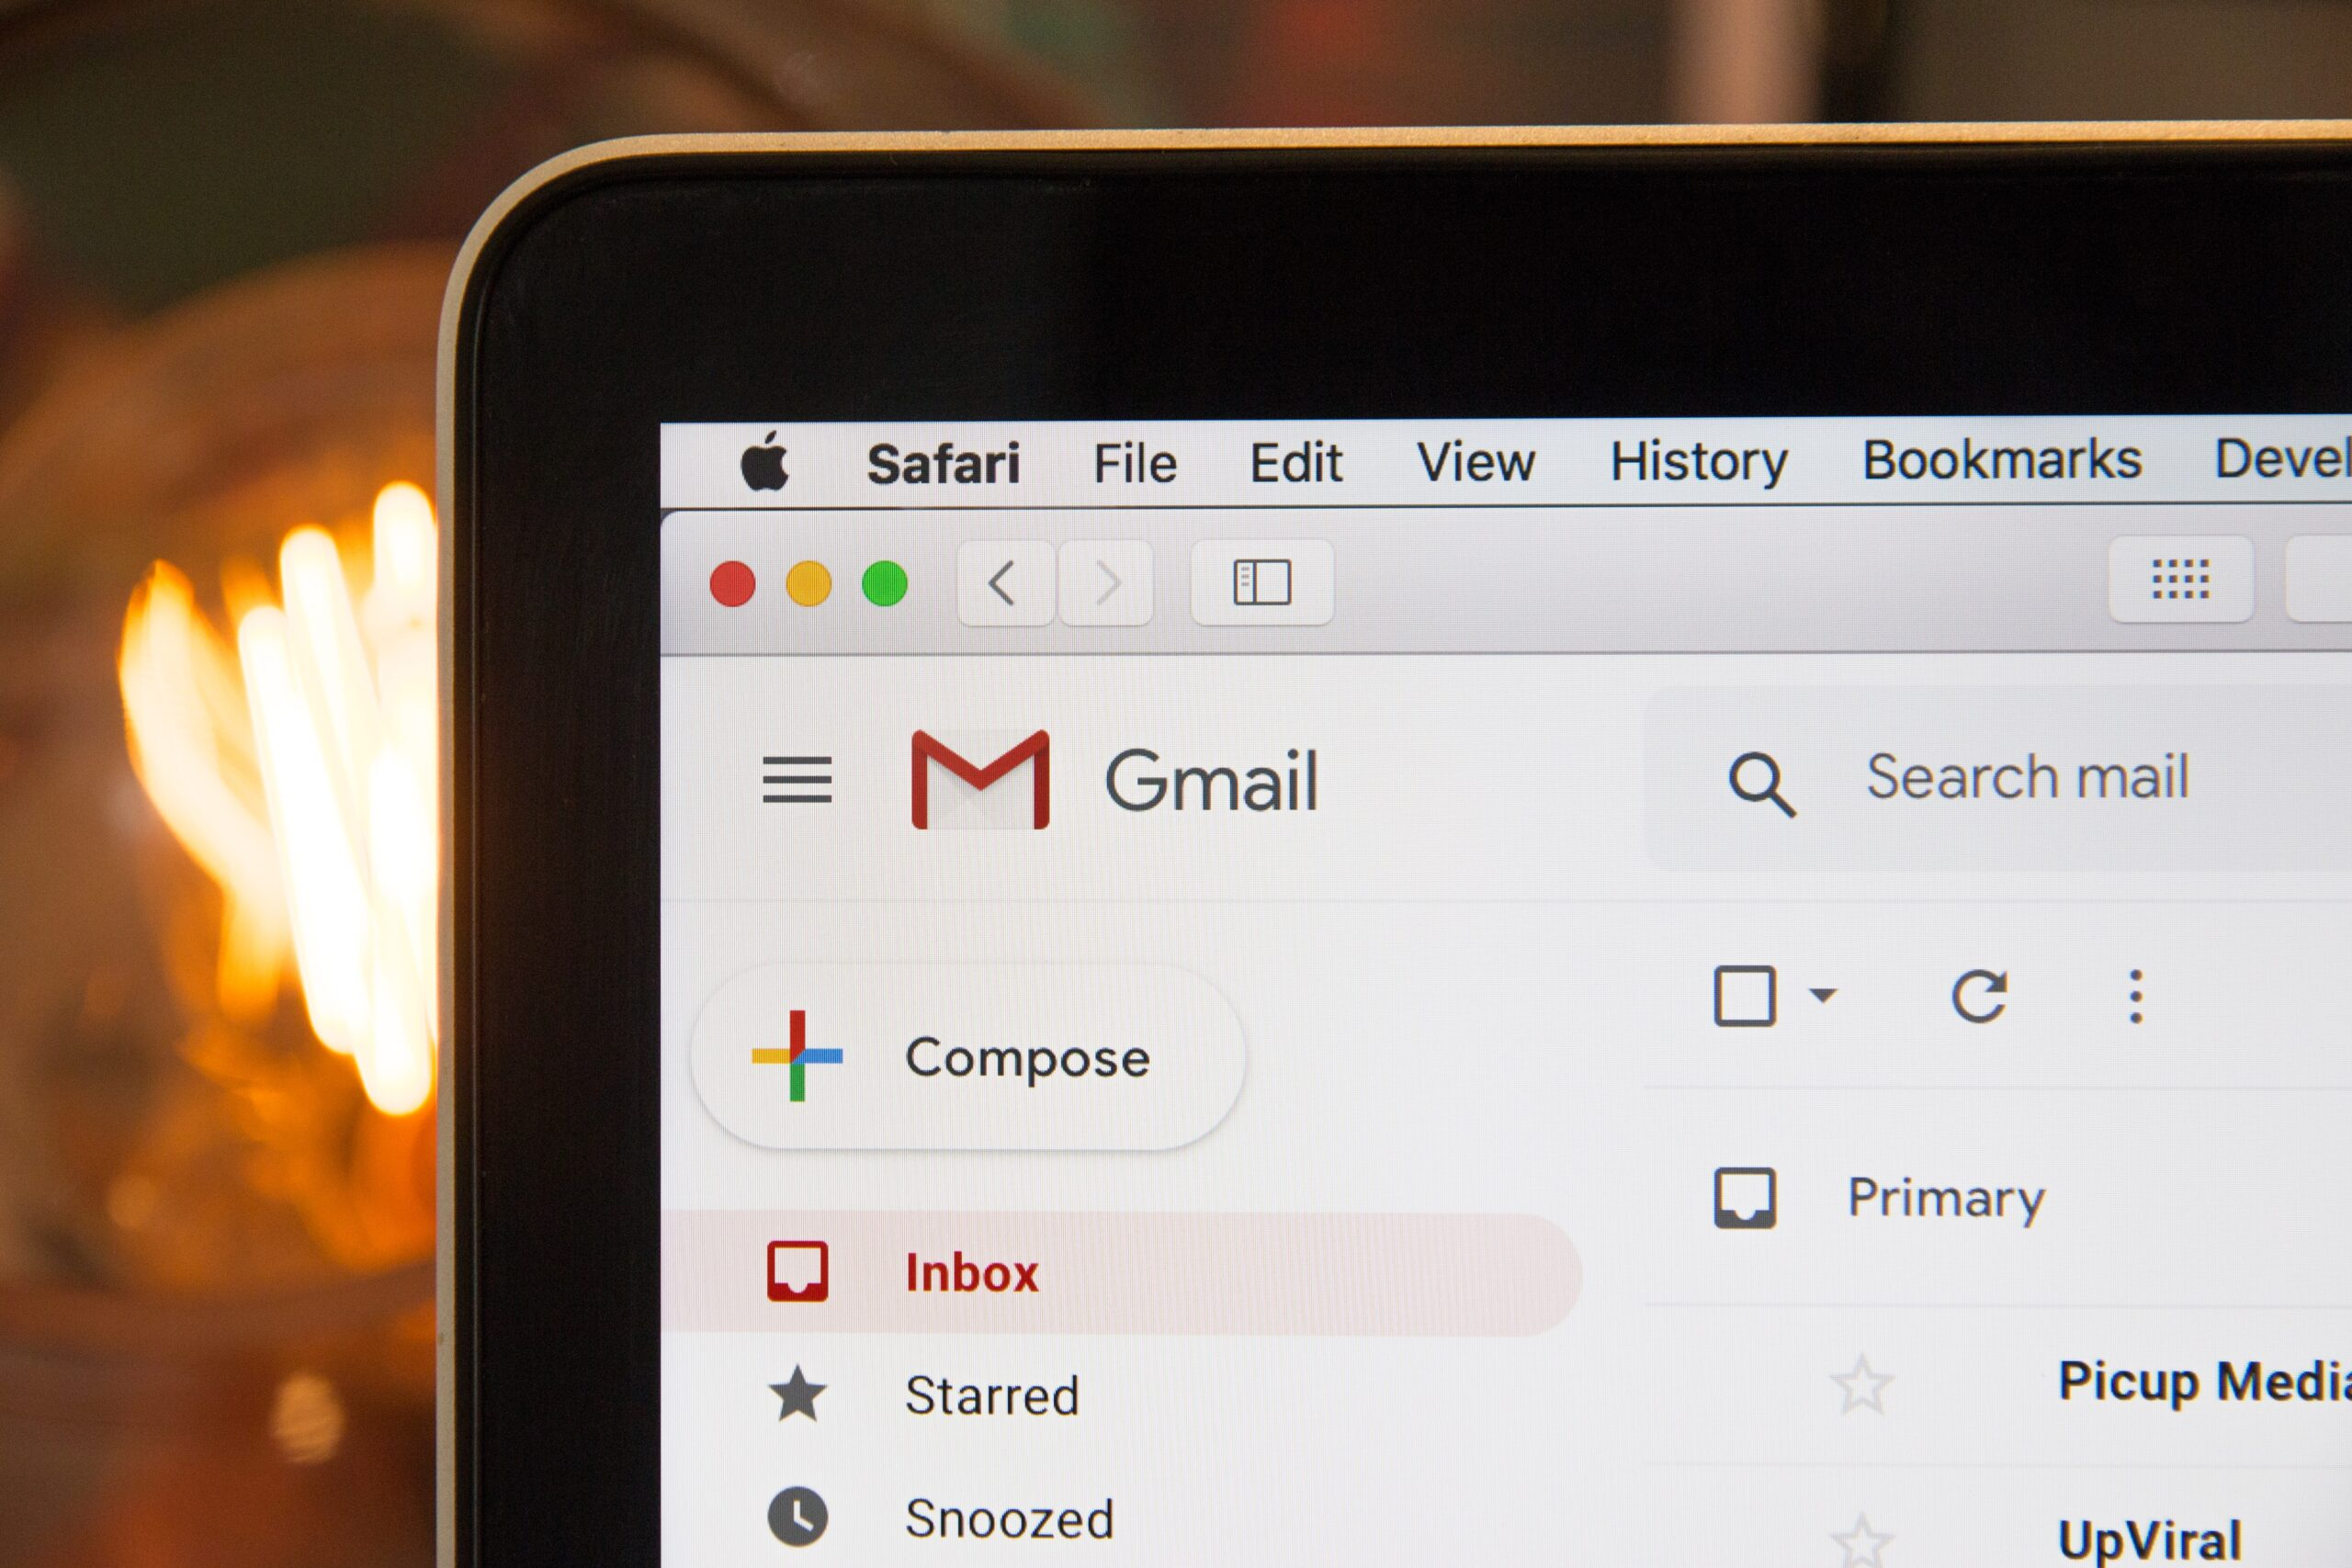 gmail attachment not working, Error in Gmail attachment, gmail file attachment not working